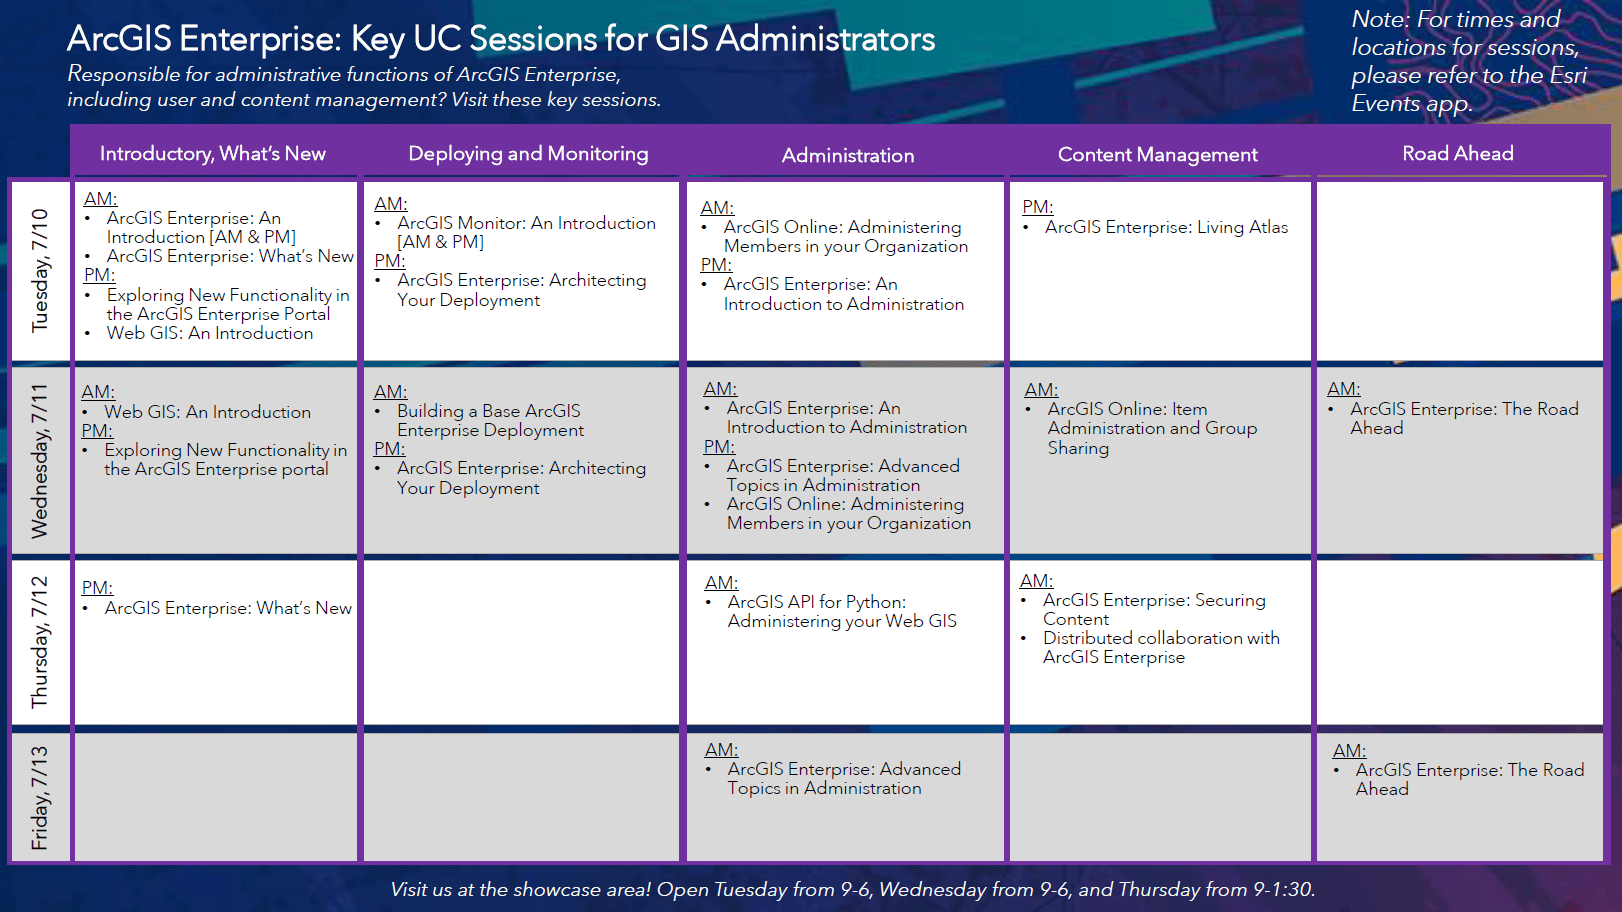 ArcGIS Enterprise sessions recommended for GIS Administrators. For the full pdf, visit the link included here in the blog.